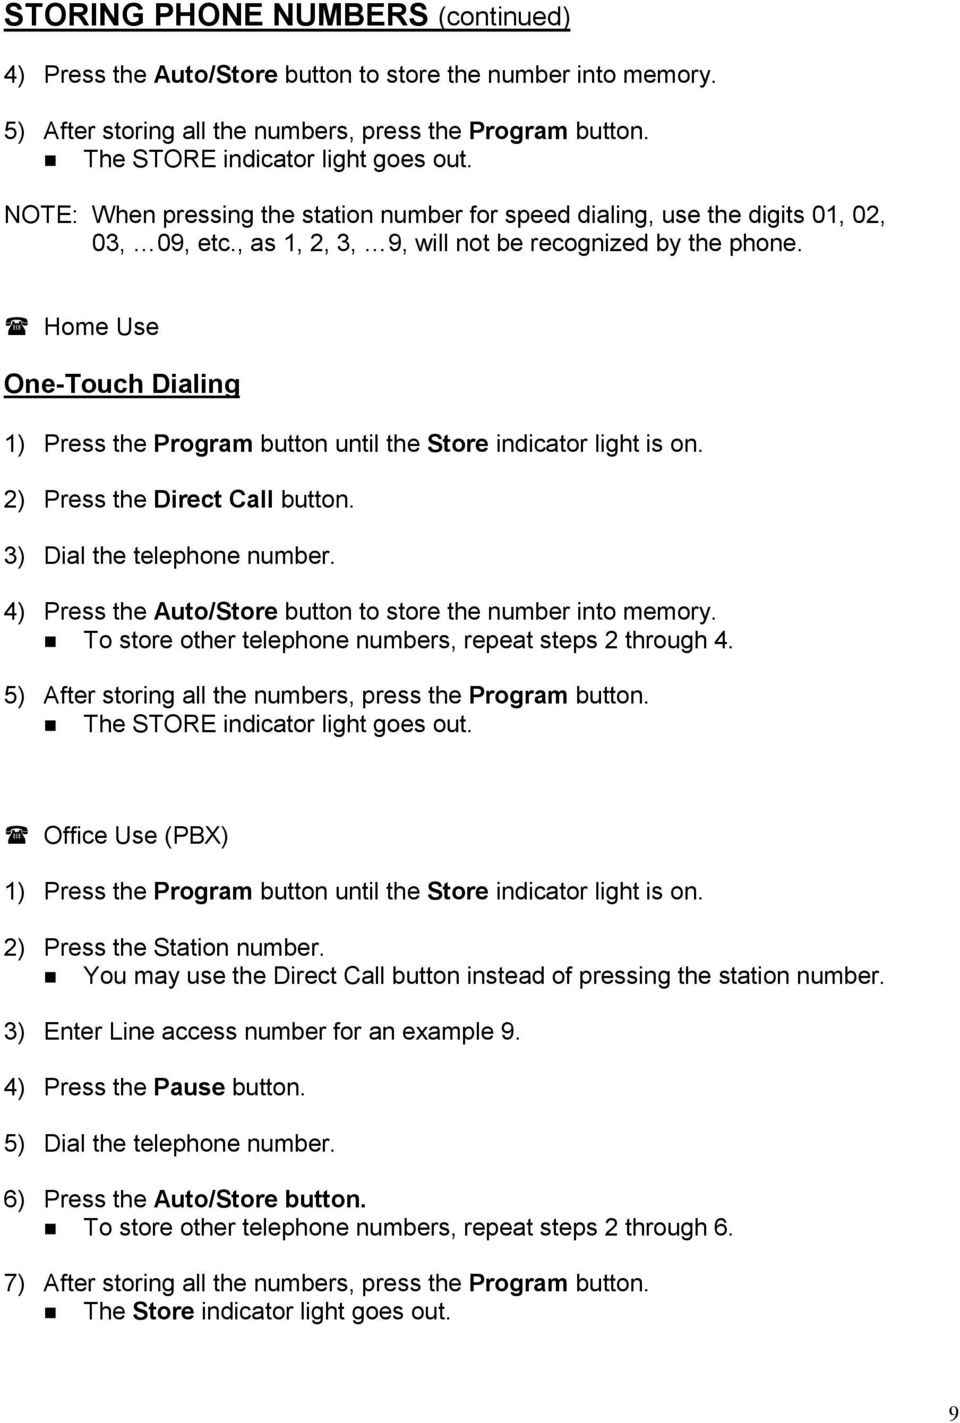 Home Use One-Touch Dialing 1) Press the Program button until the Store indicator light is on. 2) Press the Direct Call button. 3) Dial the telephone number.